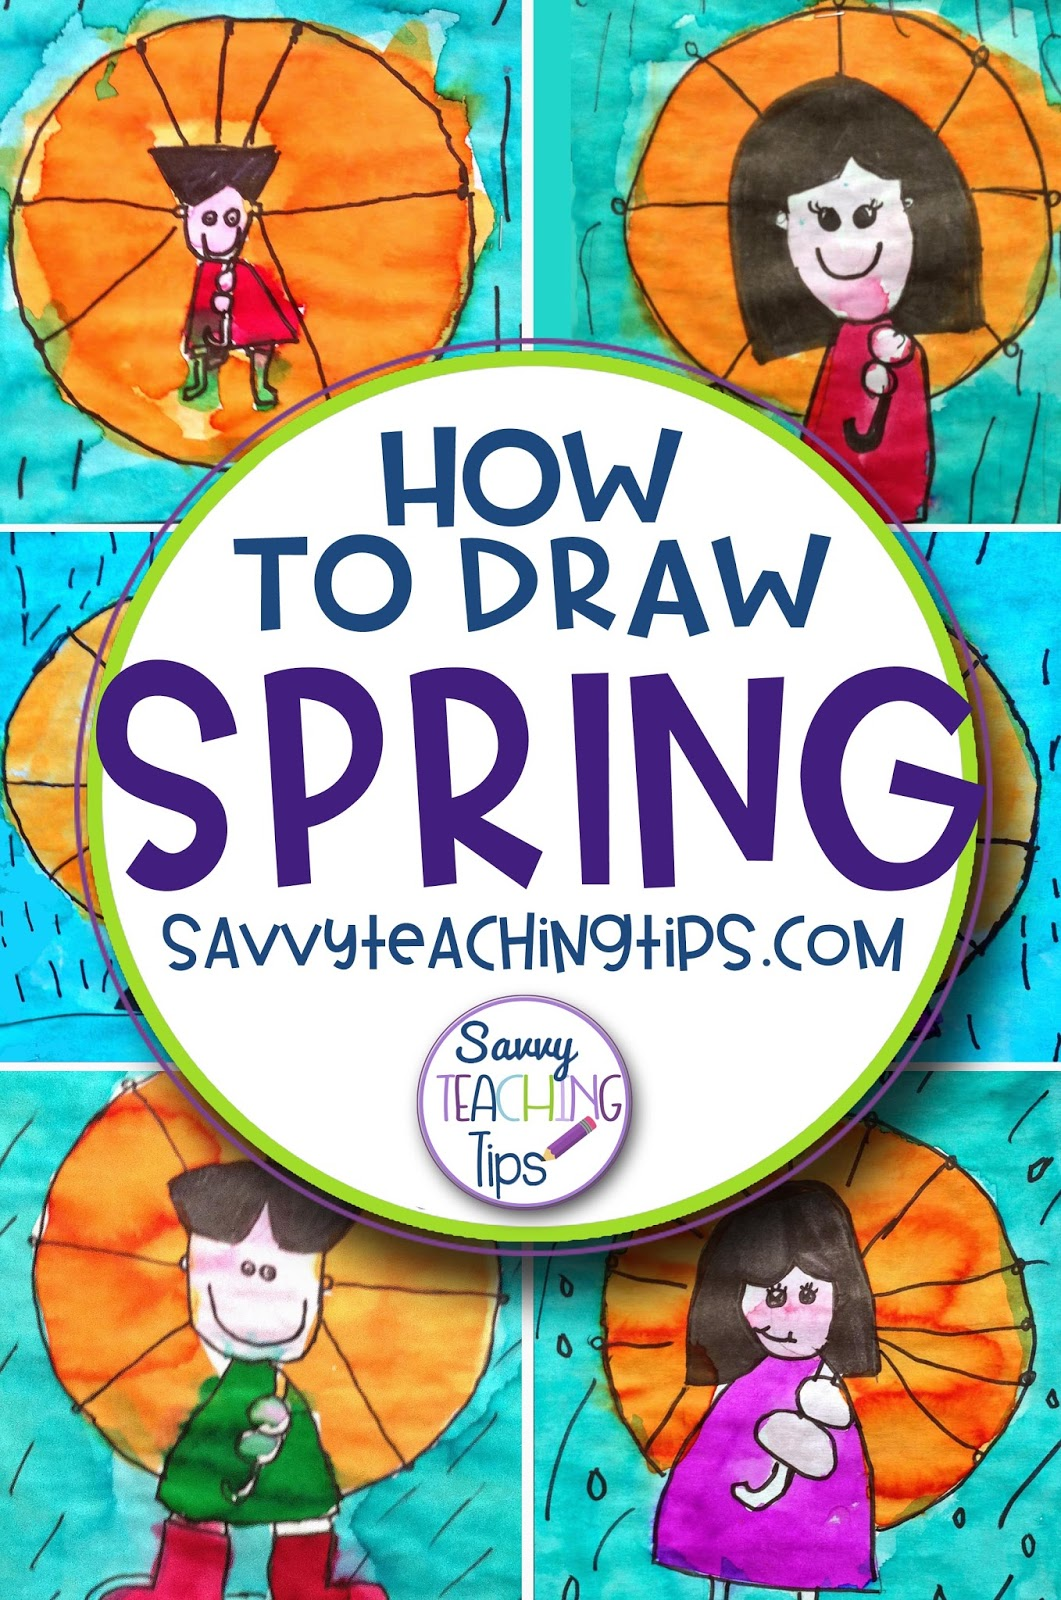 How to draw a spring